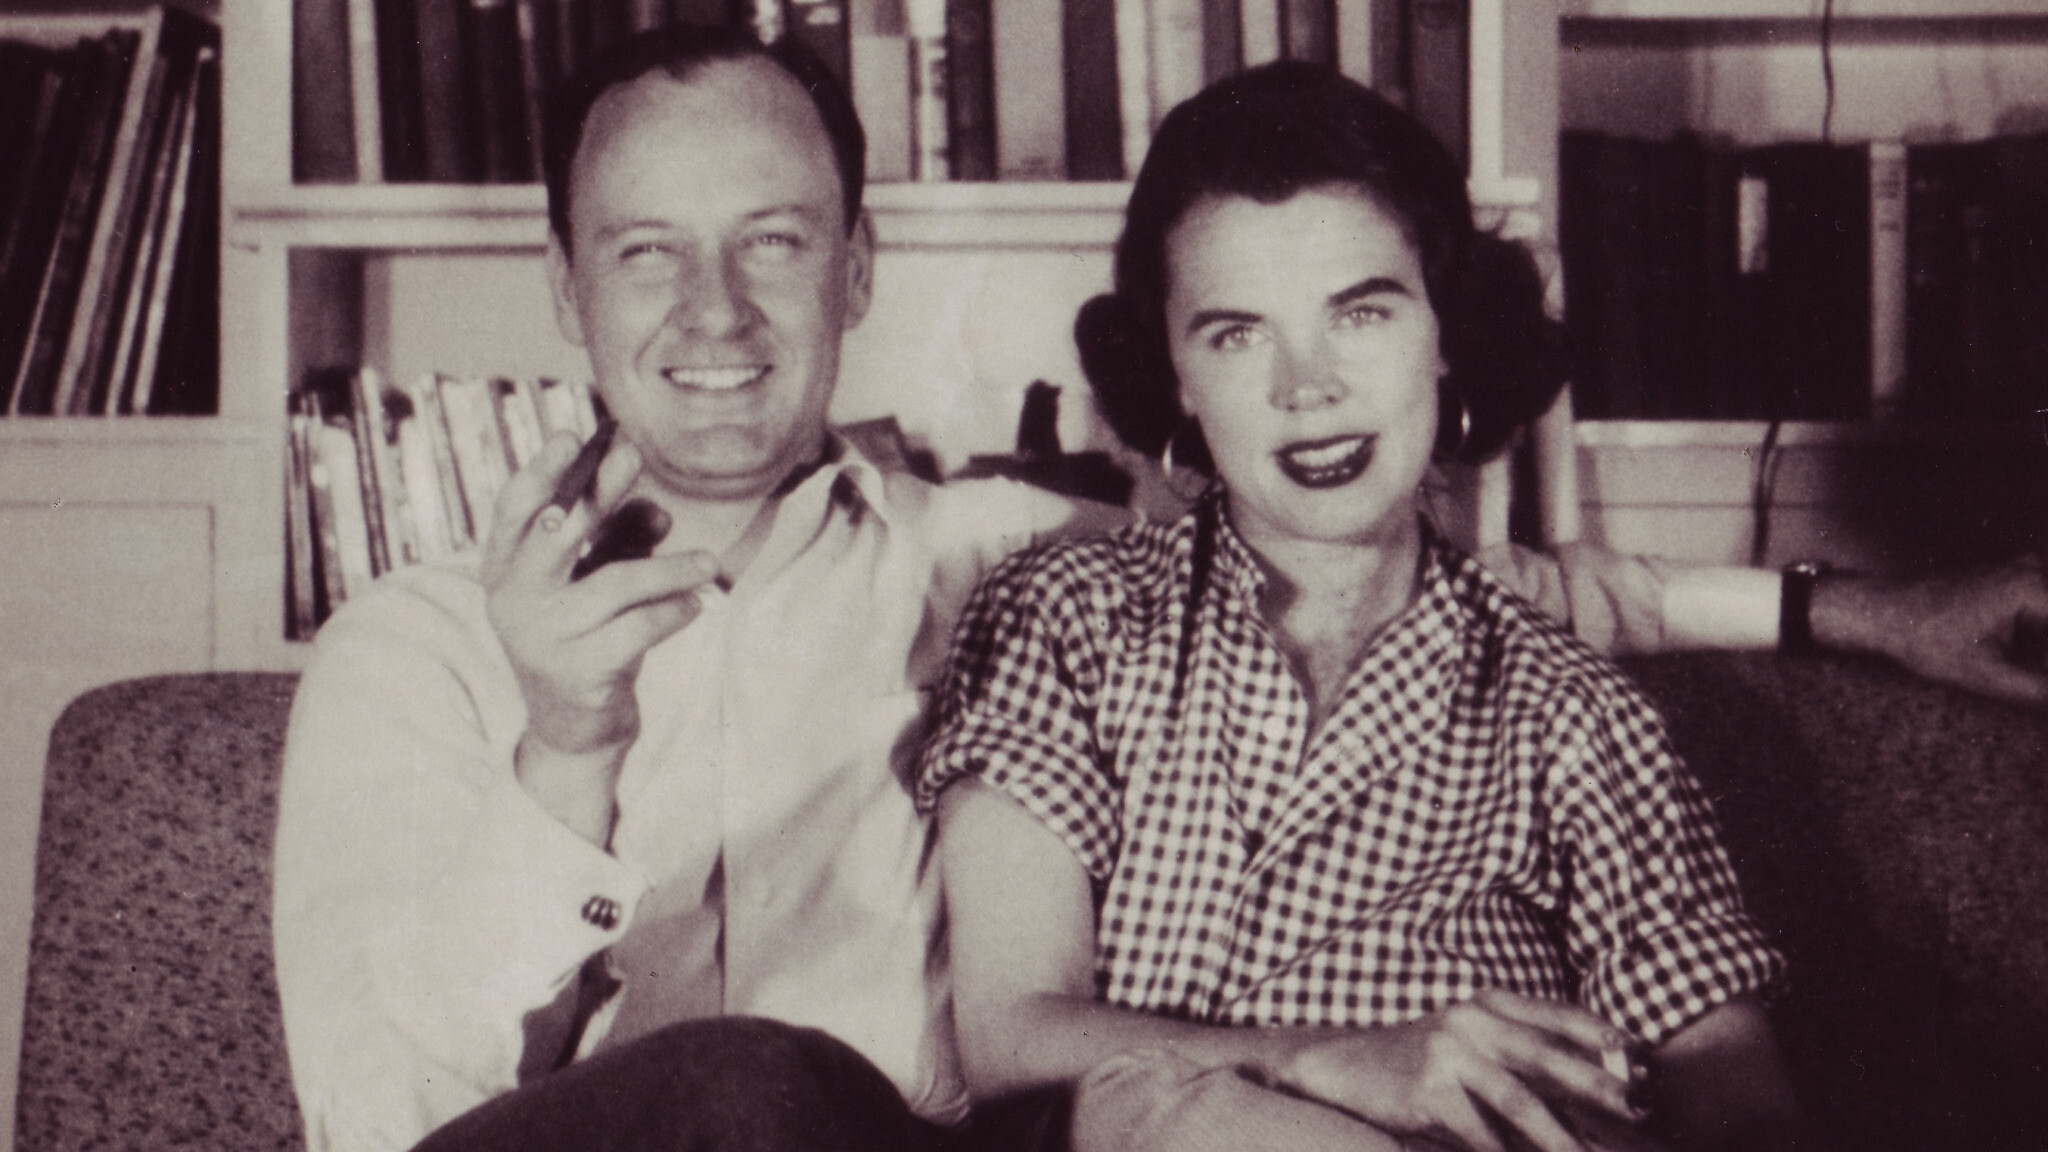 Stan and Joan Lee c. 1940s (Courtesy of the Stan Lee Papers, Box #177, American Heritage Center, University of Wyoming)